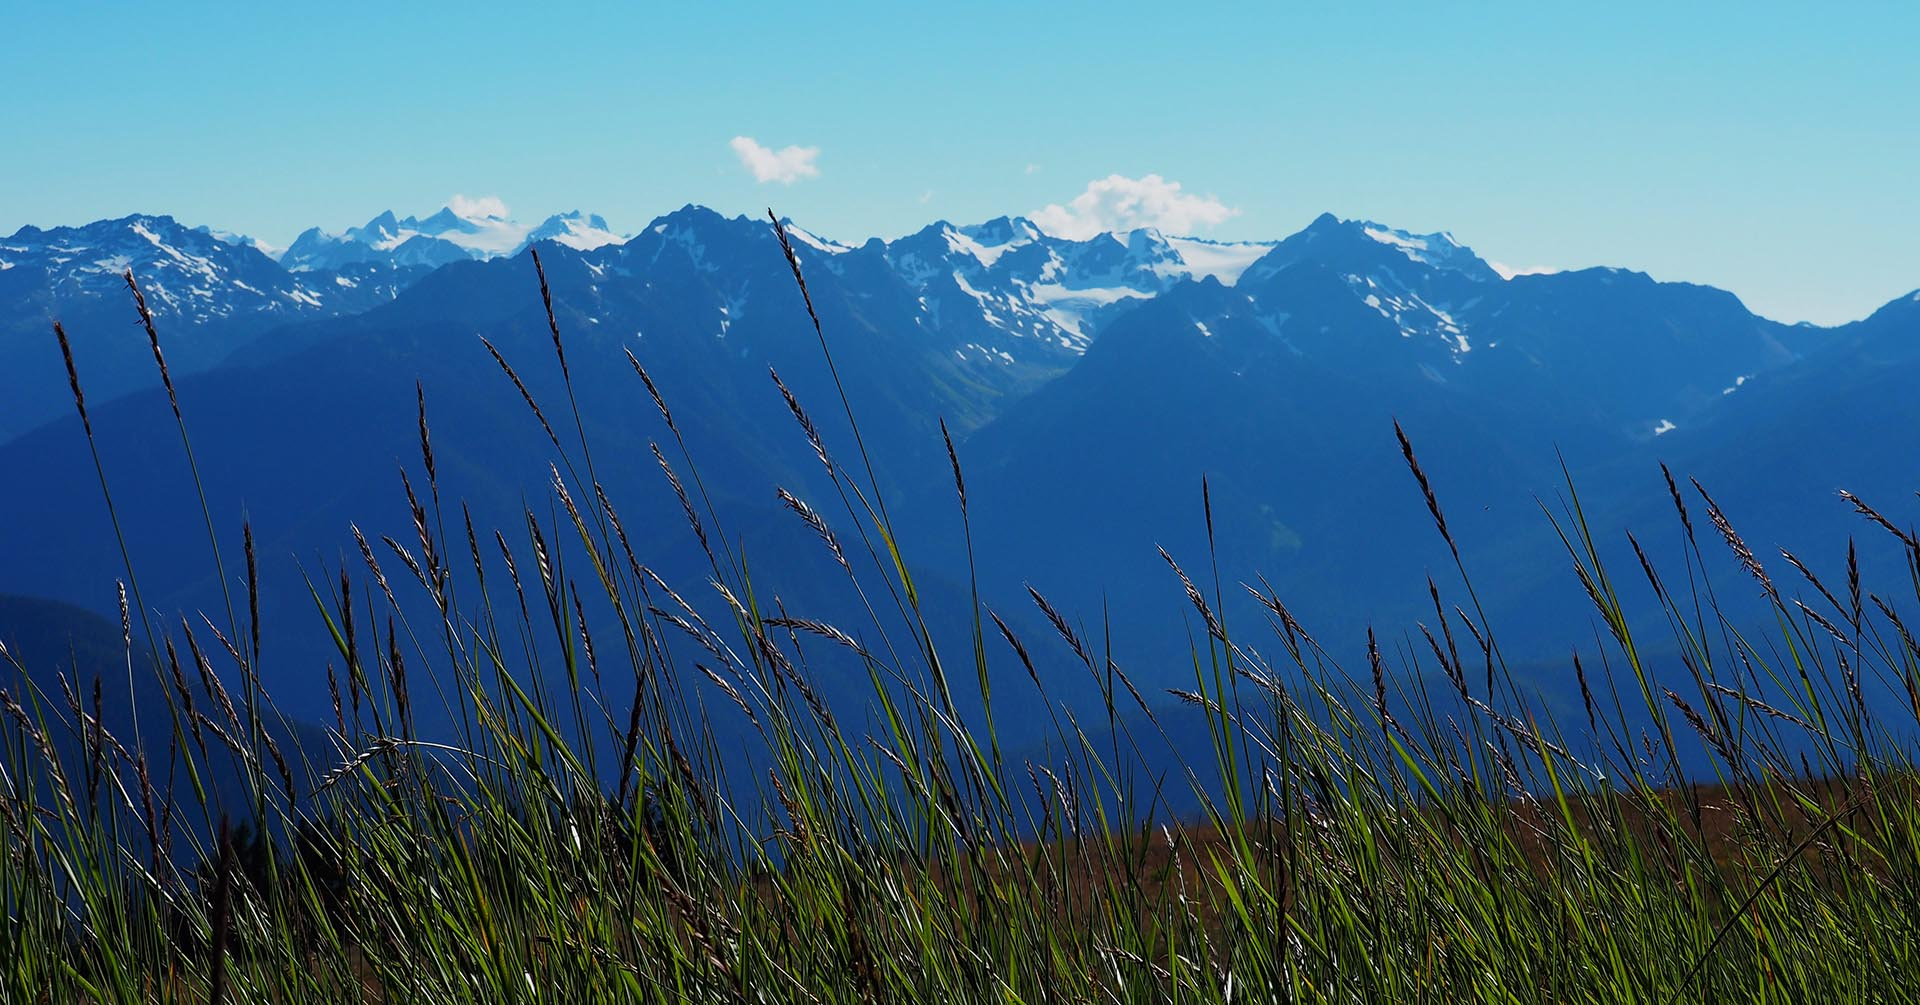 Explore natural diversity in the Olympic National Park